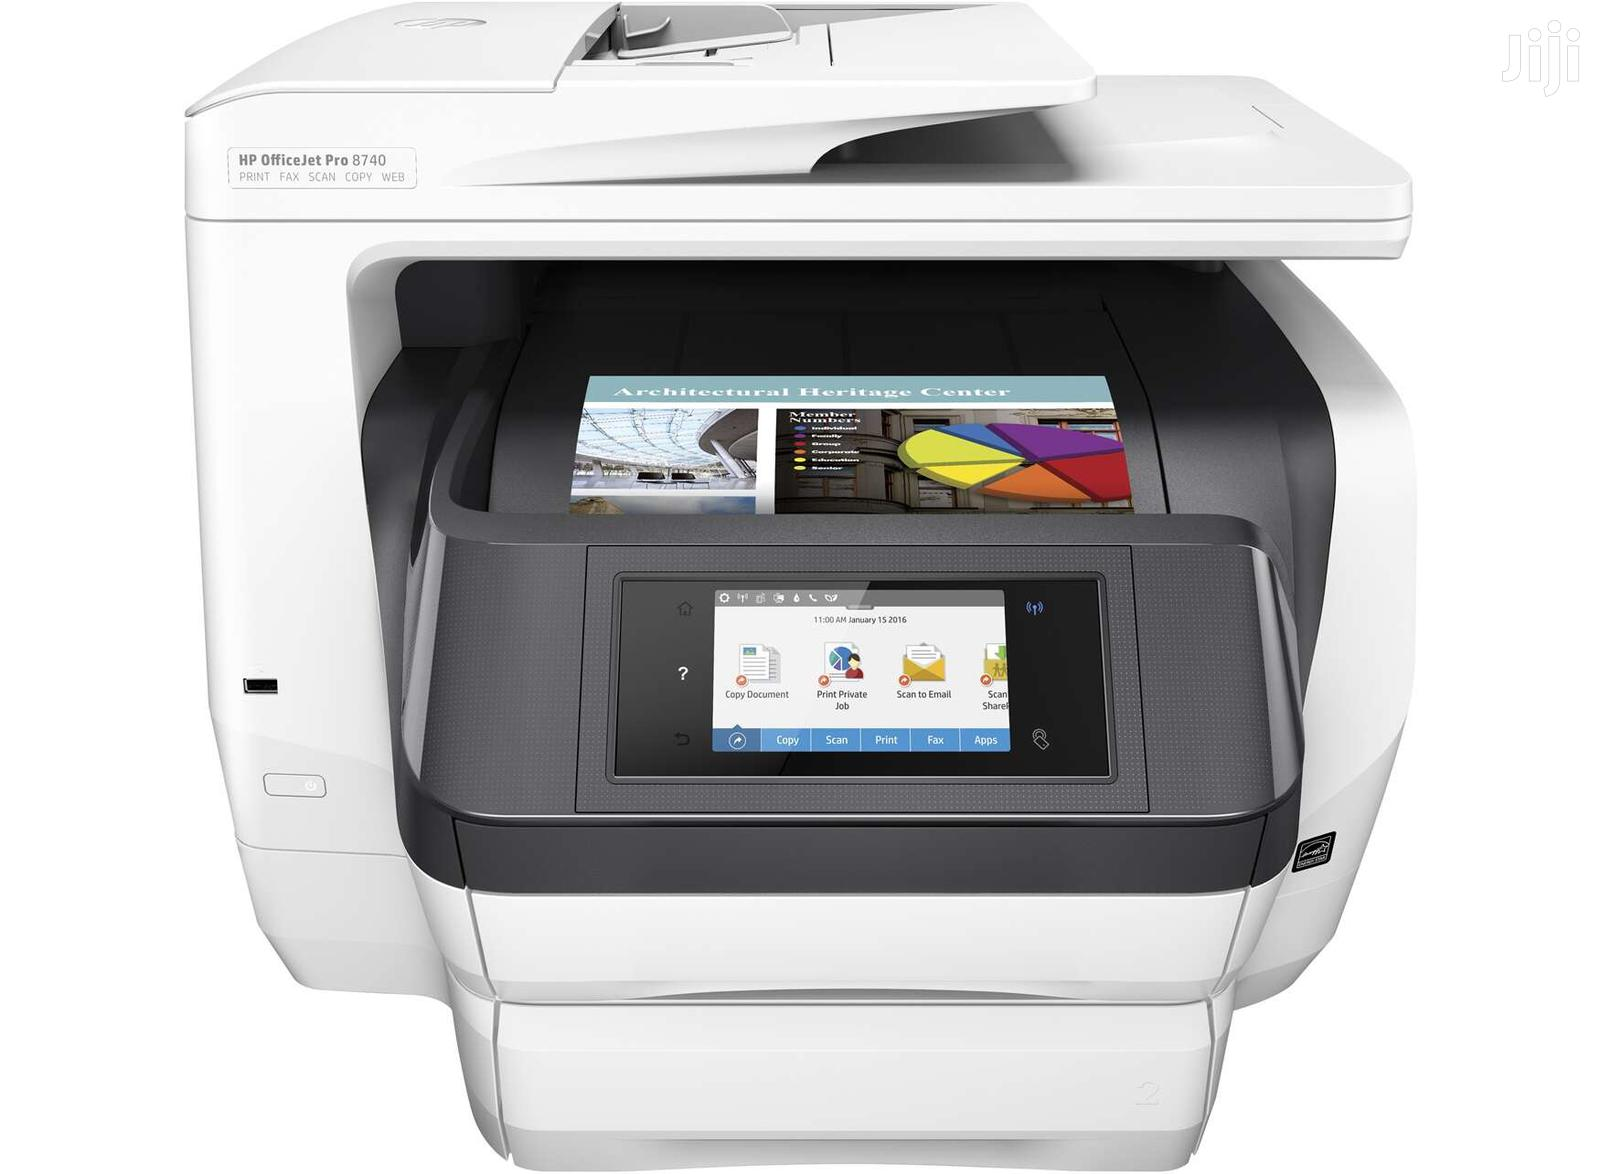 Archive: HP Officejet Pro 8720 All-in-one Wireless Printer